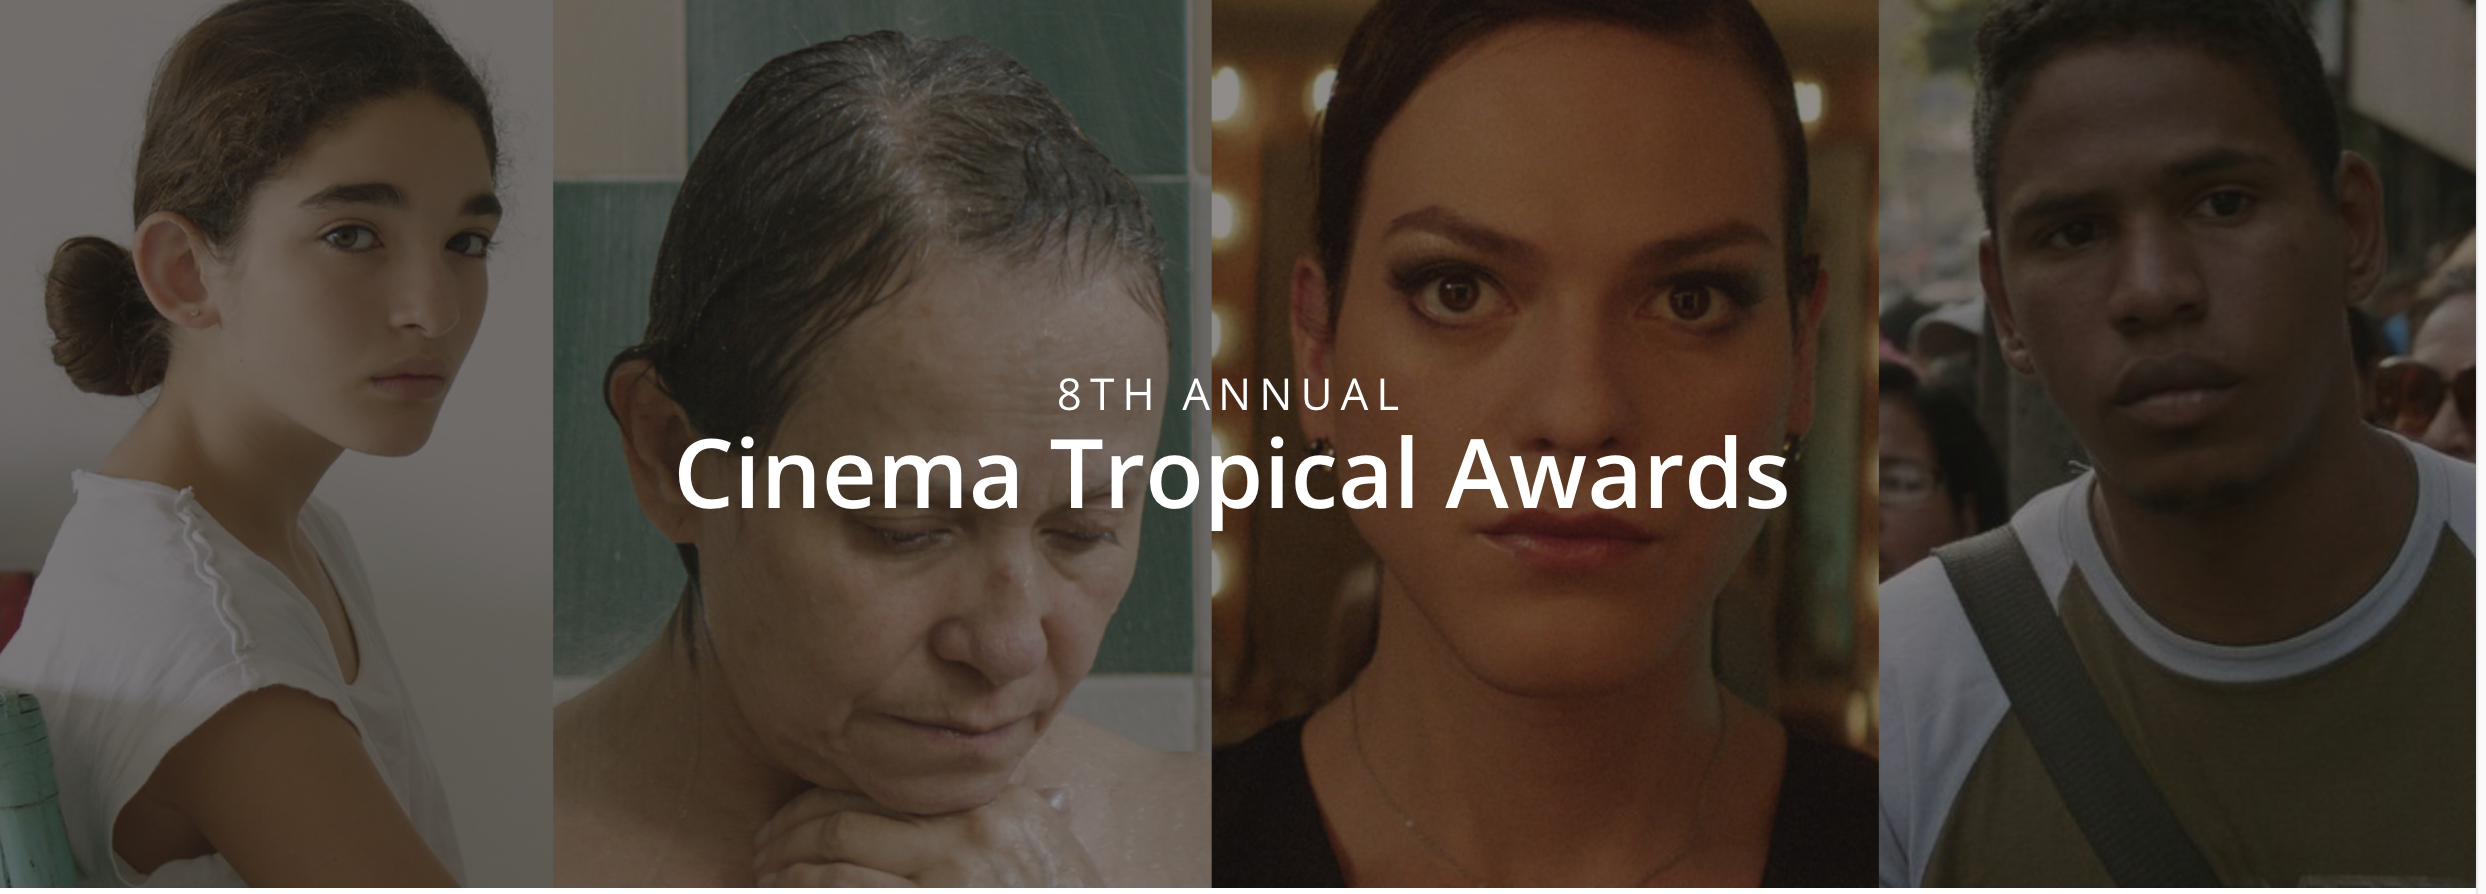 8th Annual Cinema Tropical Awards